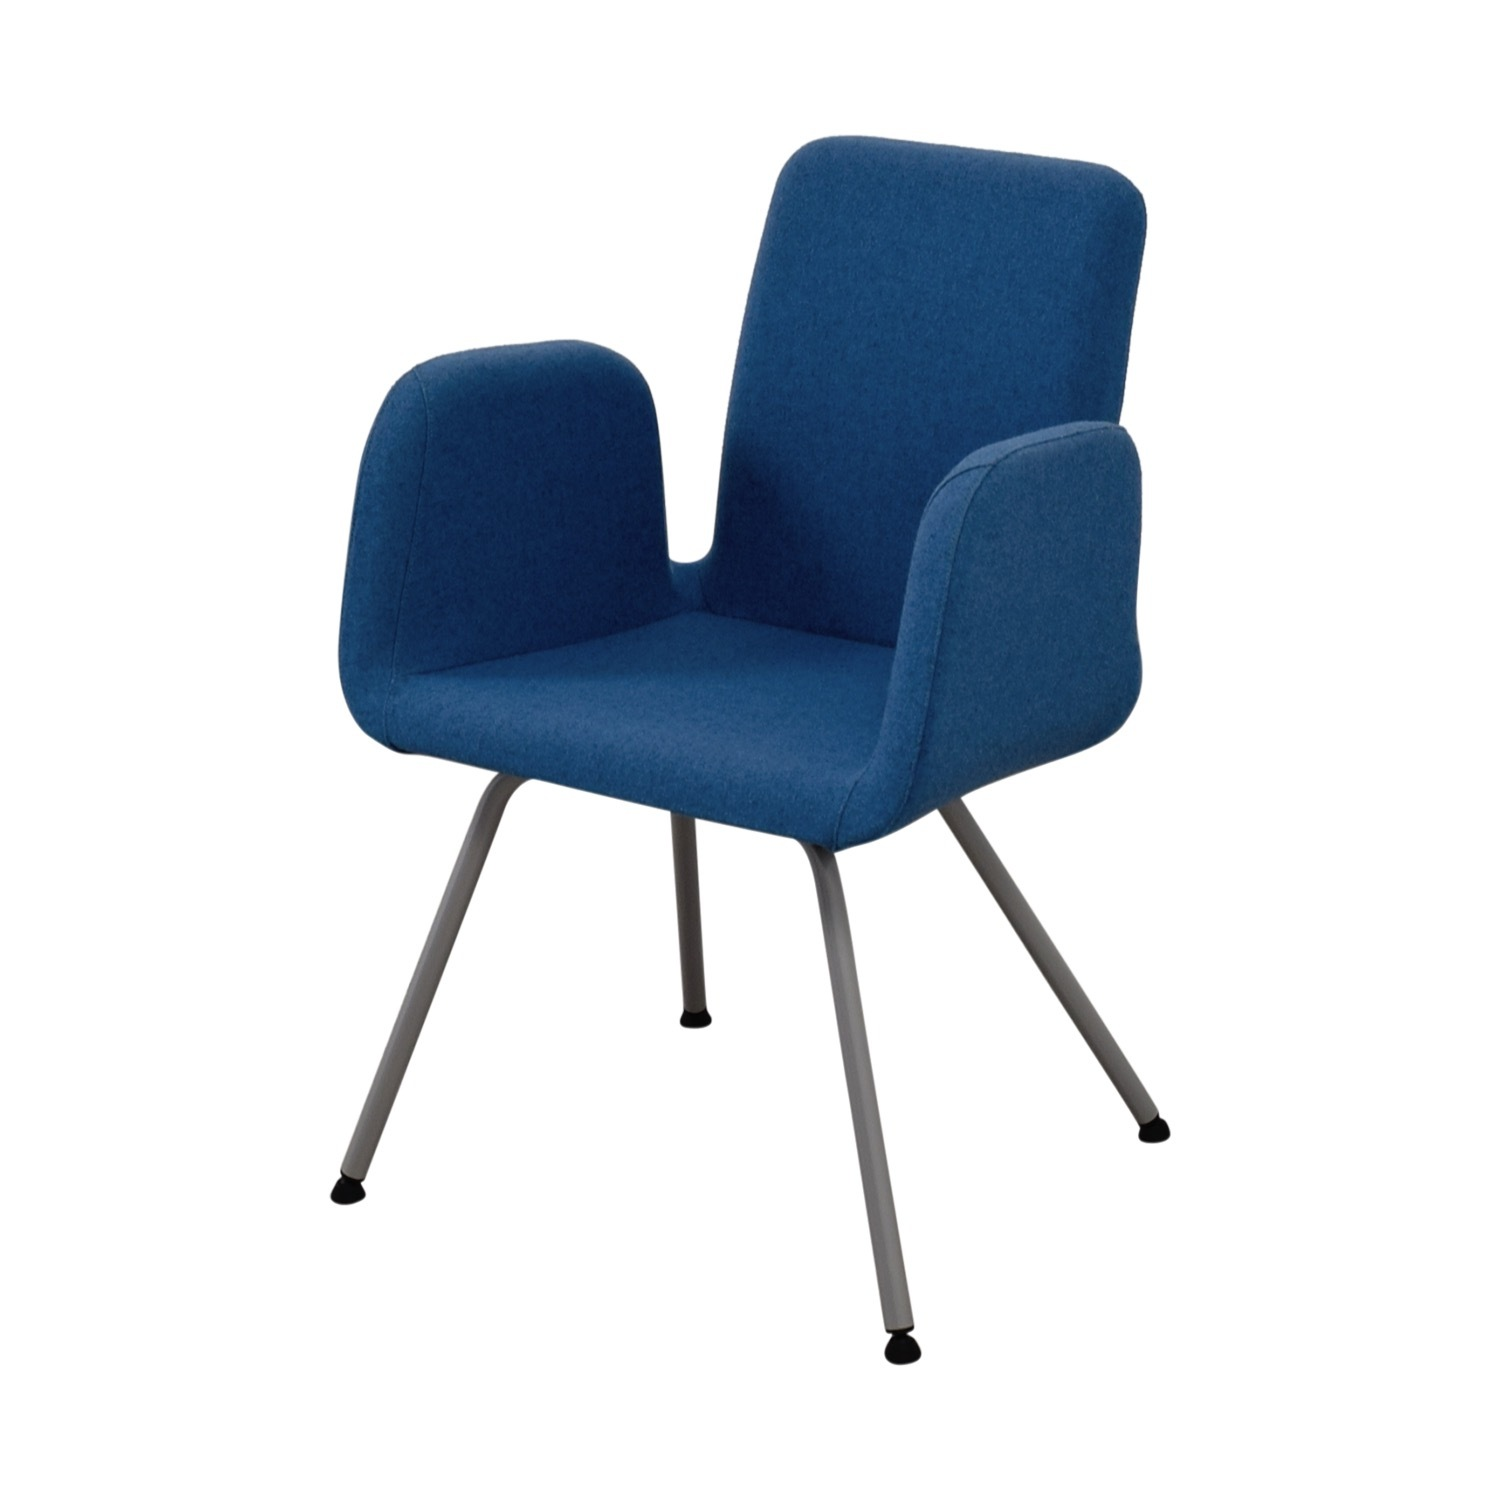 Modern Blue Accent or Office Chair